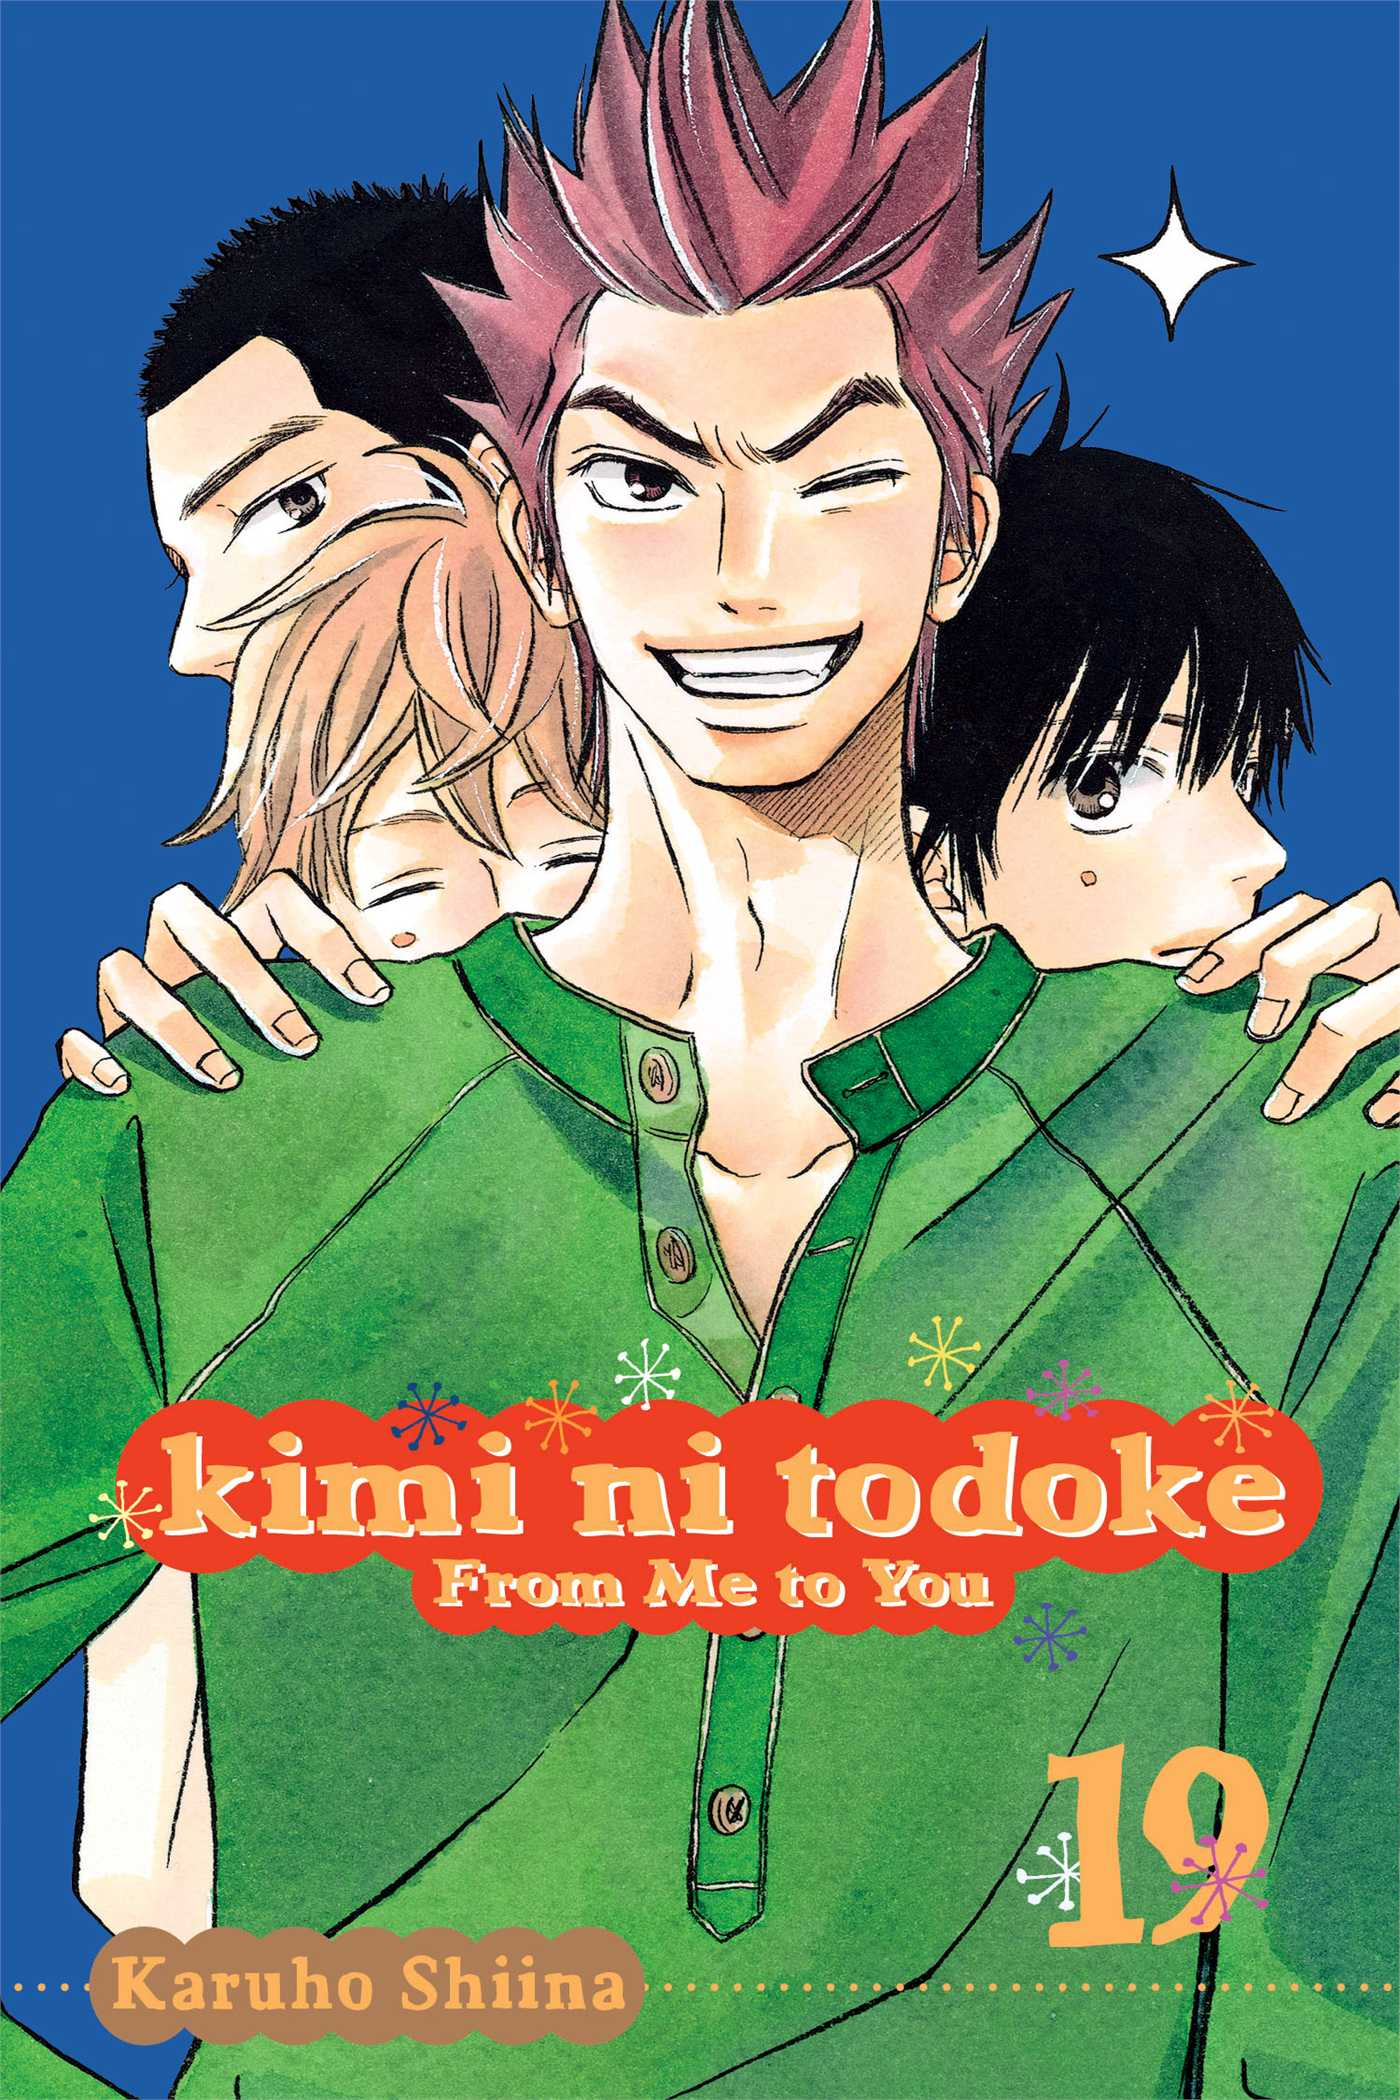 Kimi-ni-todoke-from-me-to-you-vol-19-9781421567808_hr